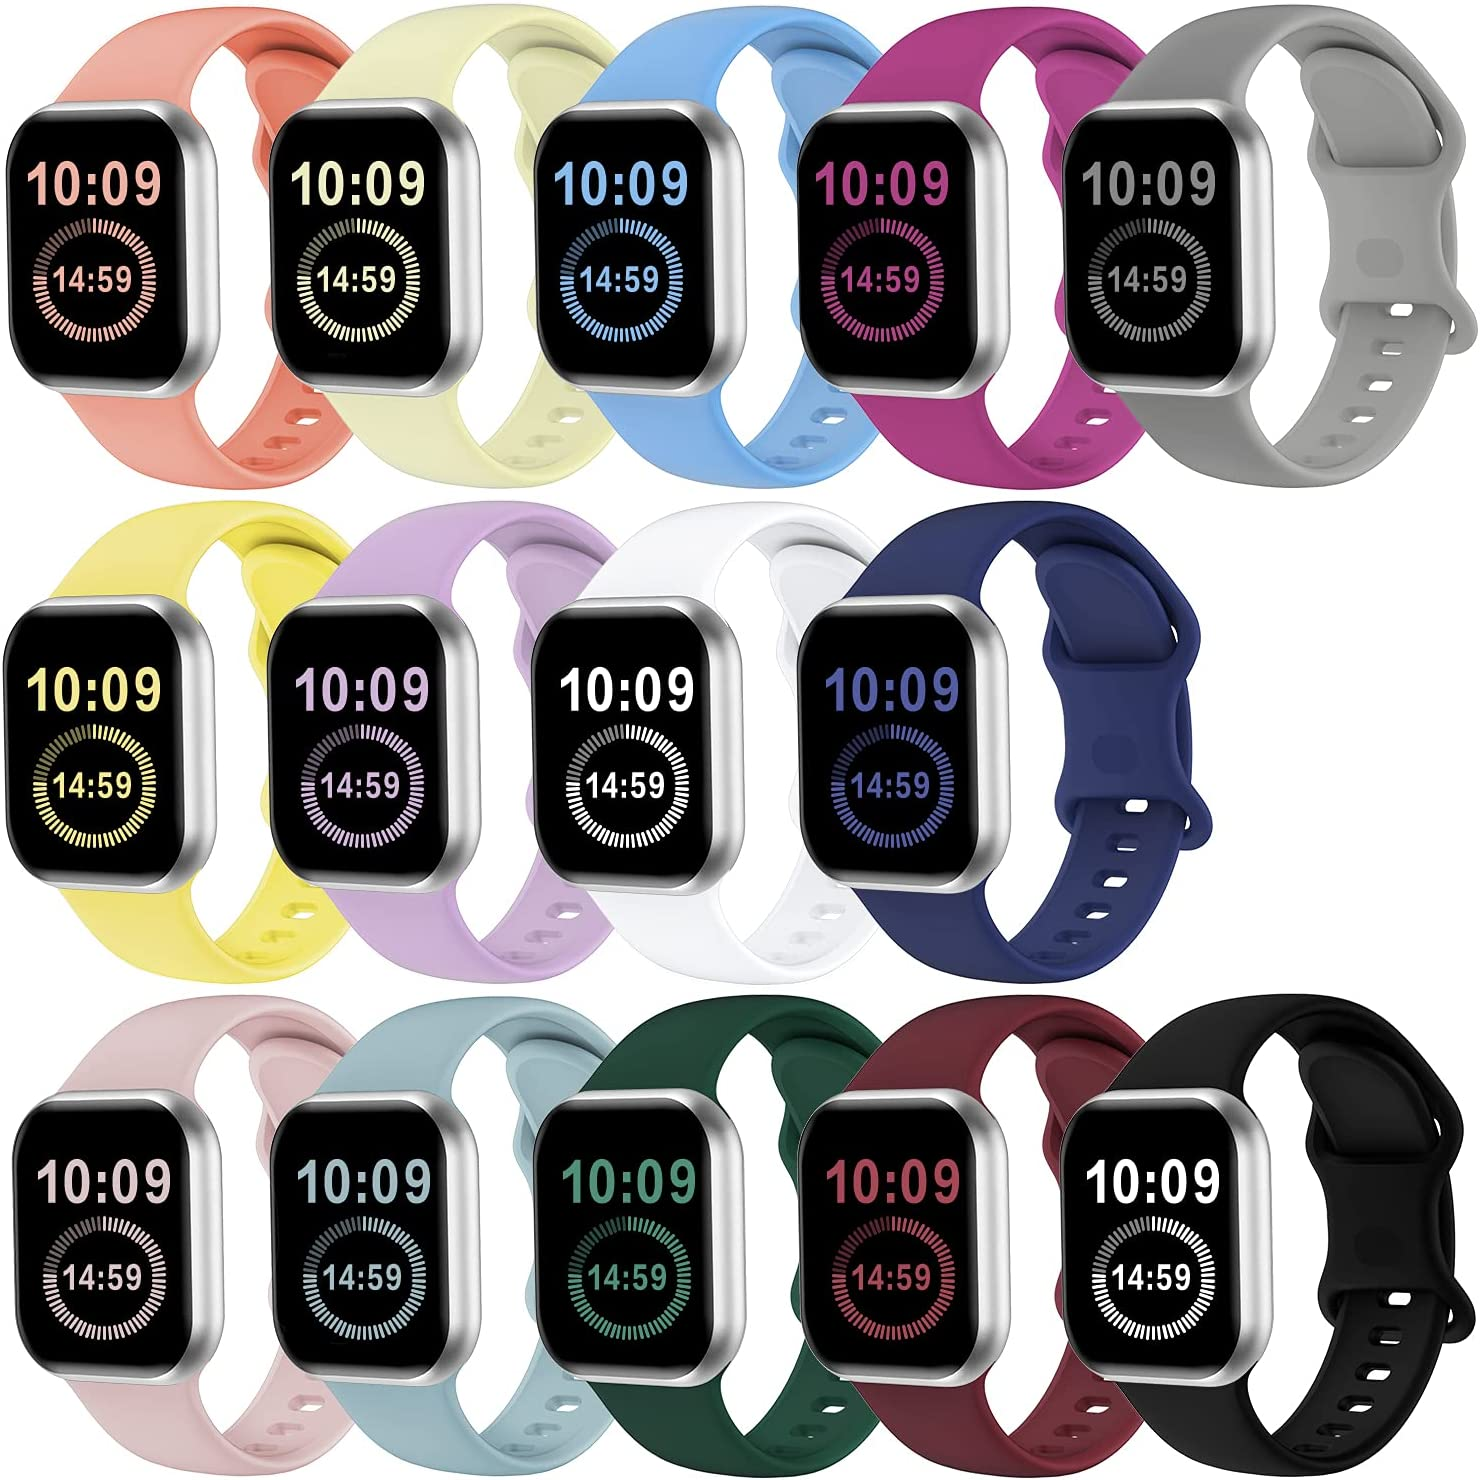 SWHAS Watch Bands Compatible with Apple Watch Bands 38mm 40mm 41mm Women Men, Soft Silicone Wristbands Replacement Strap Compatible with iWatch Series 7 6 5 4 3 2 1 SE, 14 Pack